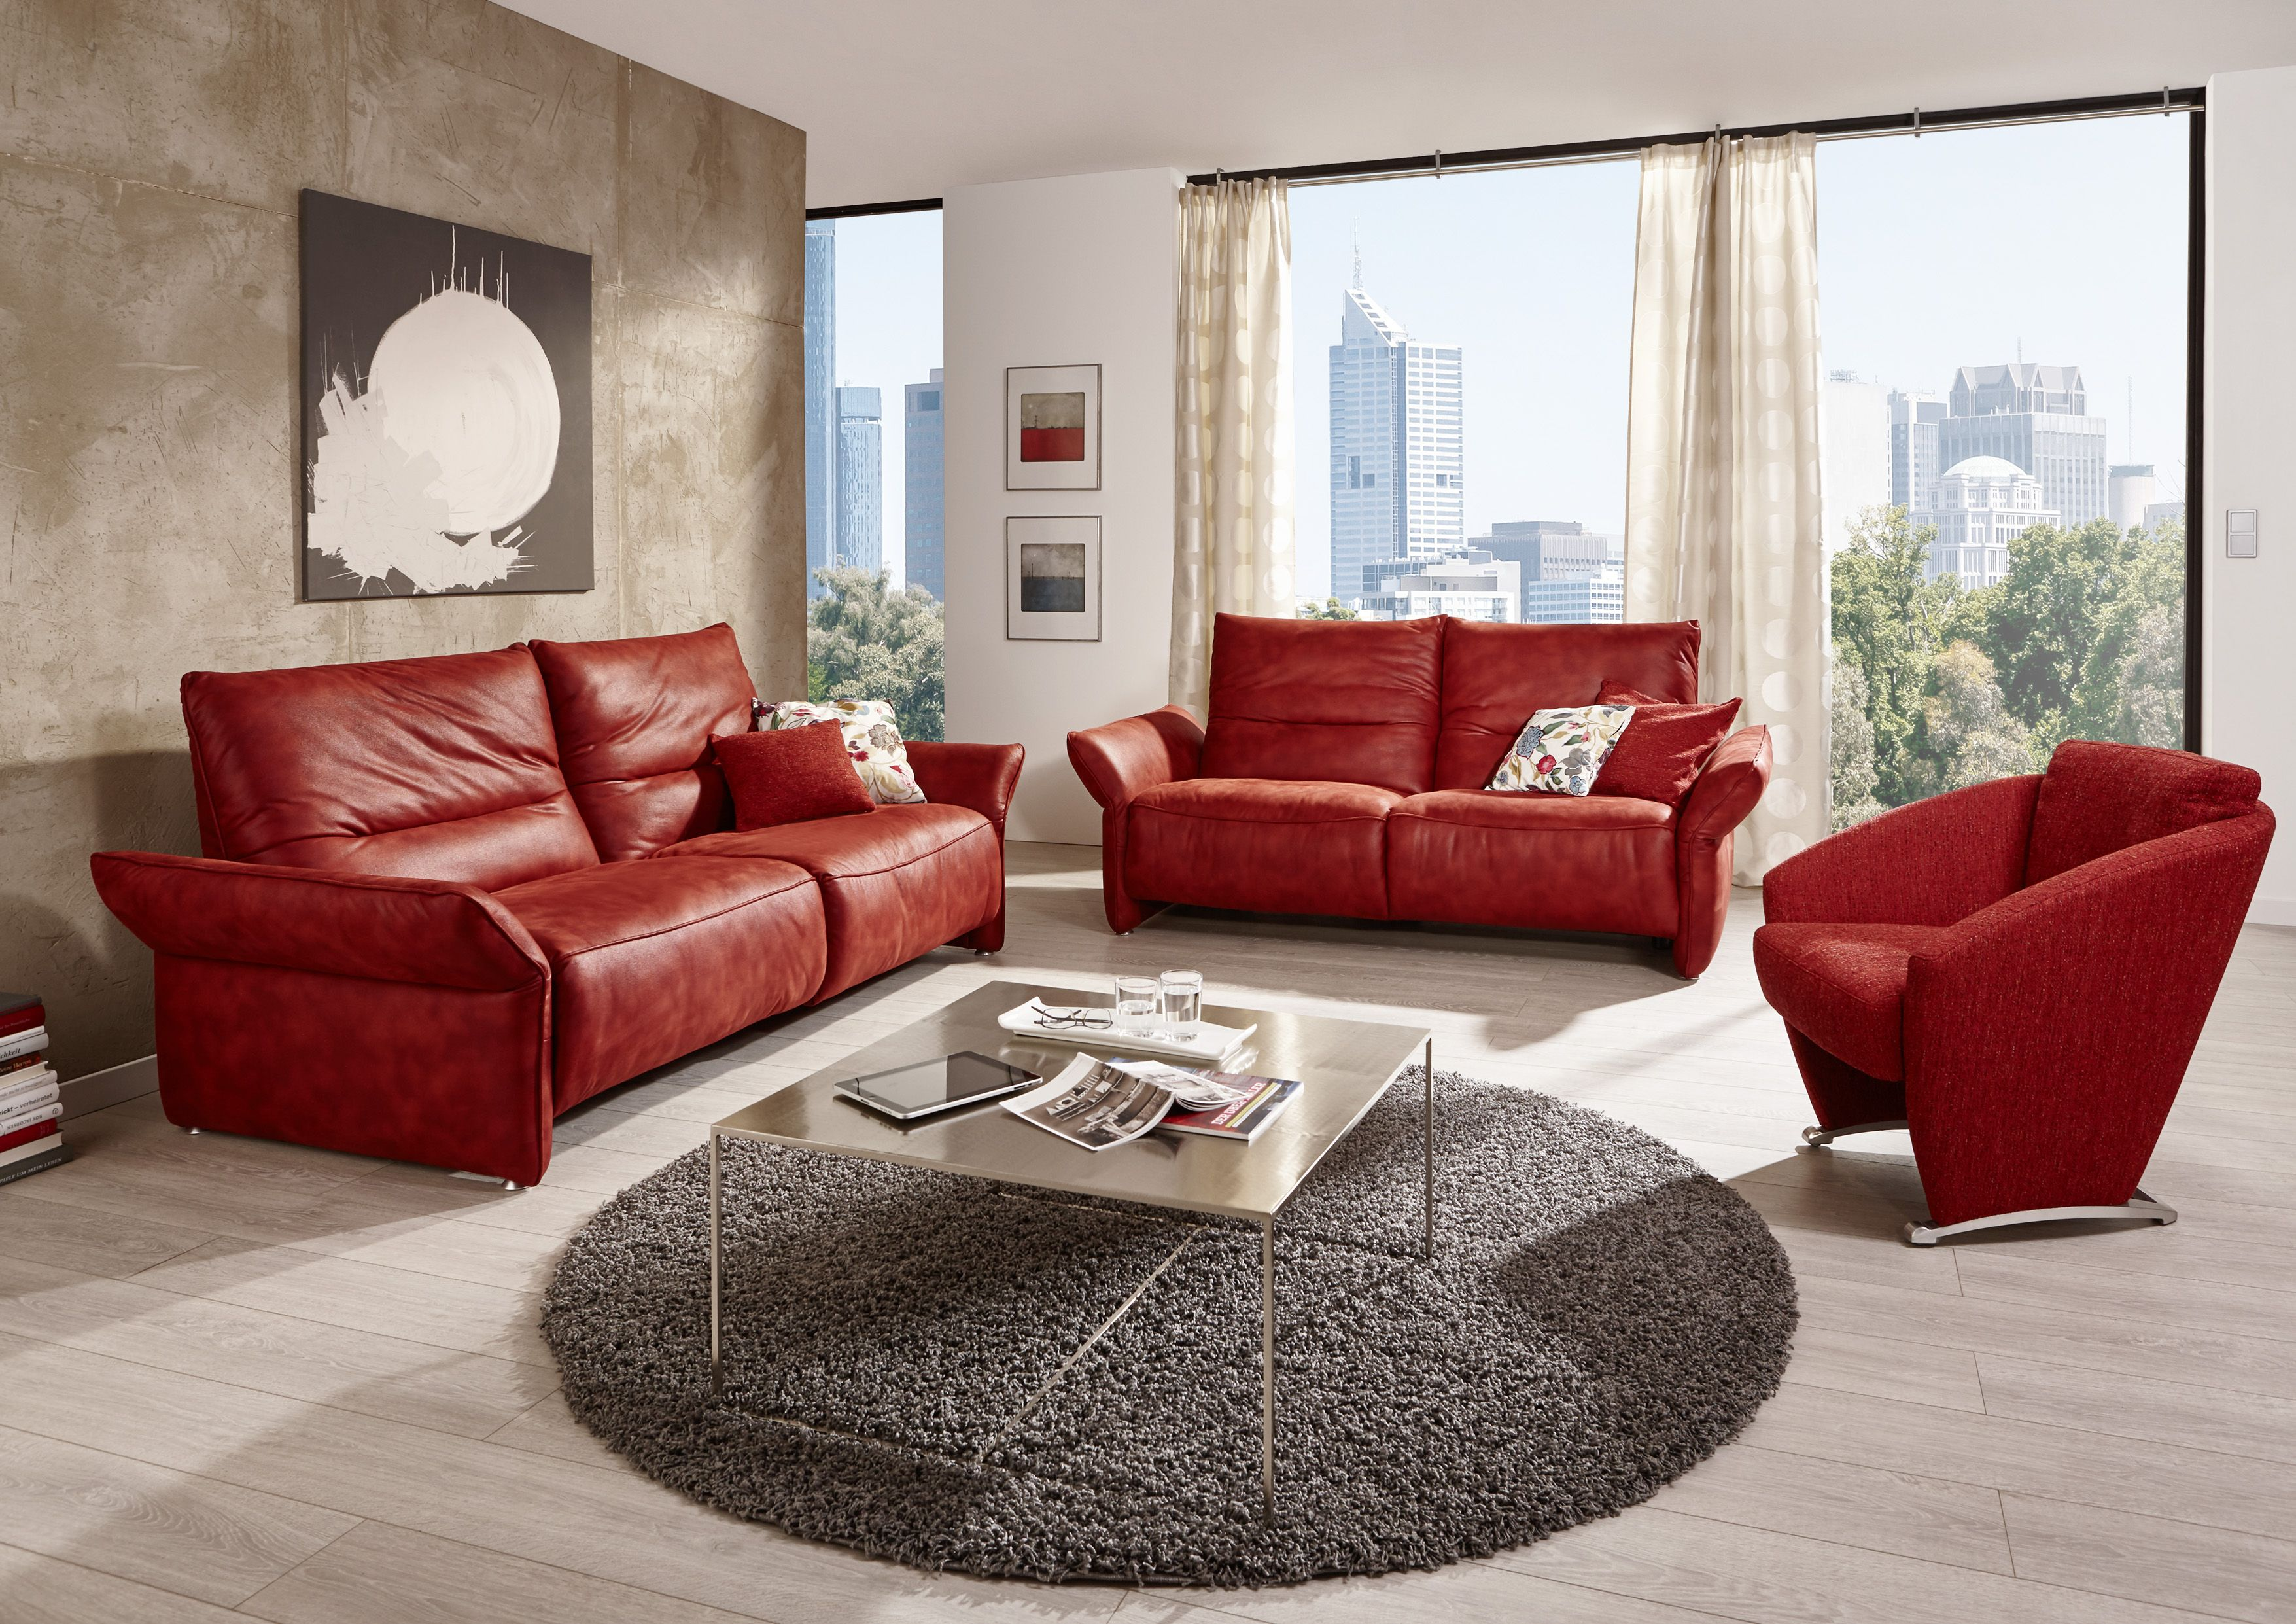 Red Leather Living Room Sofa Furniture Designs With Black Round Rug Metal  Coffee Table